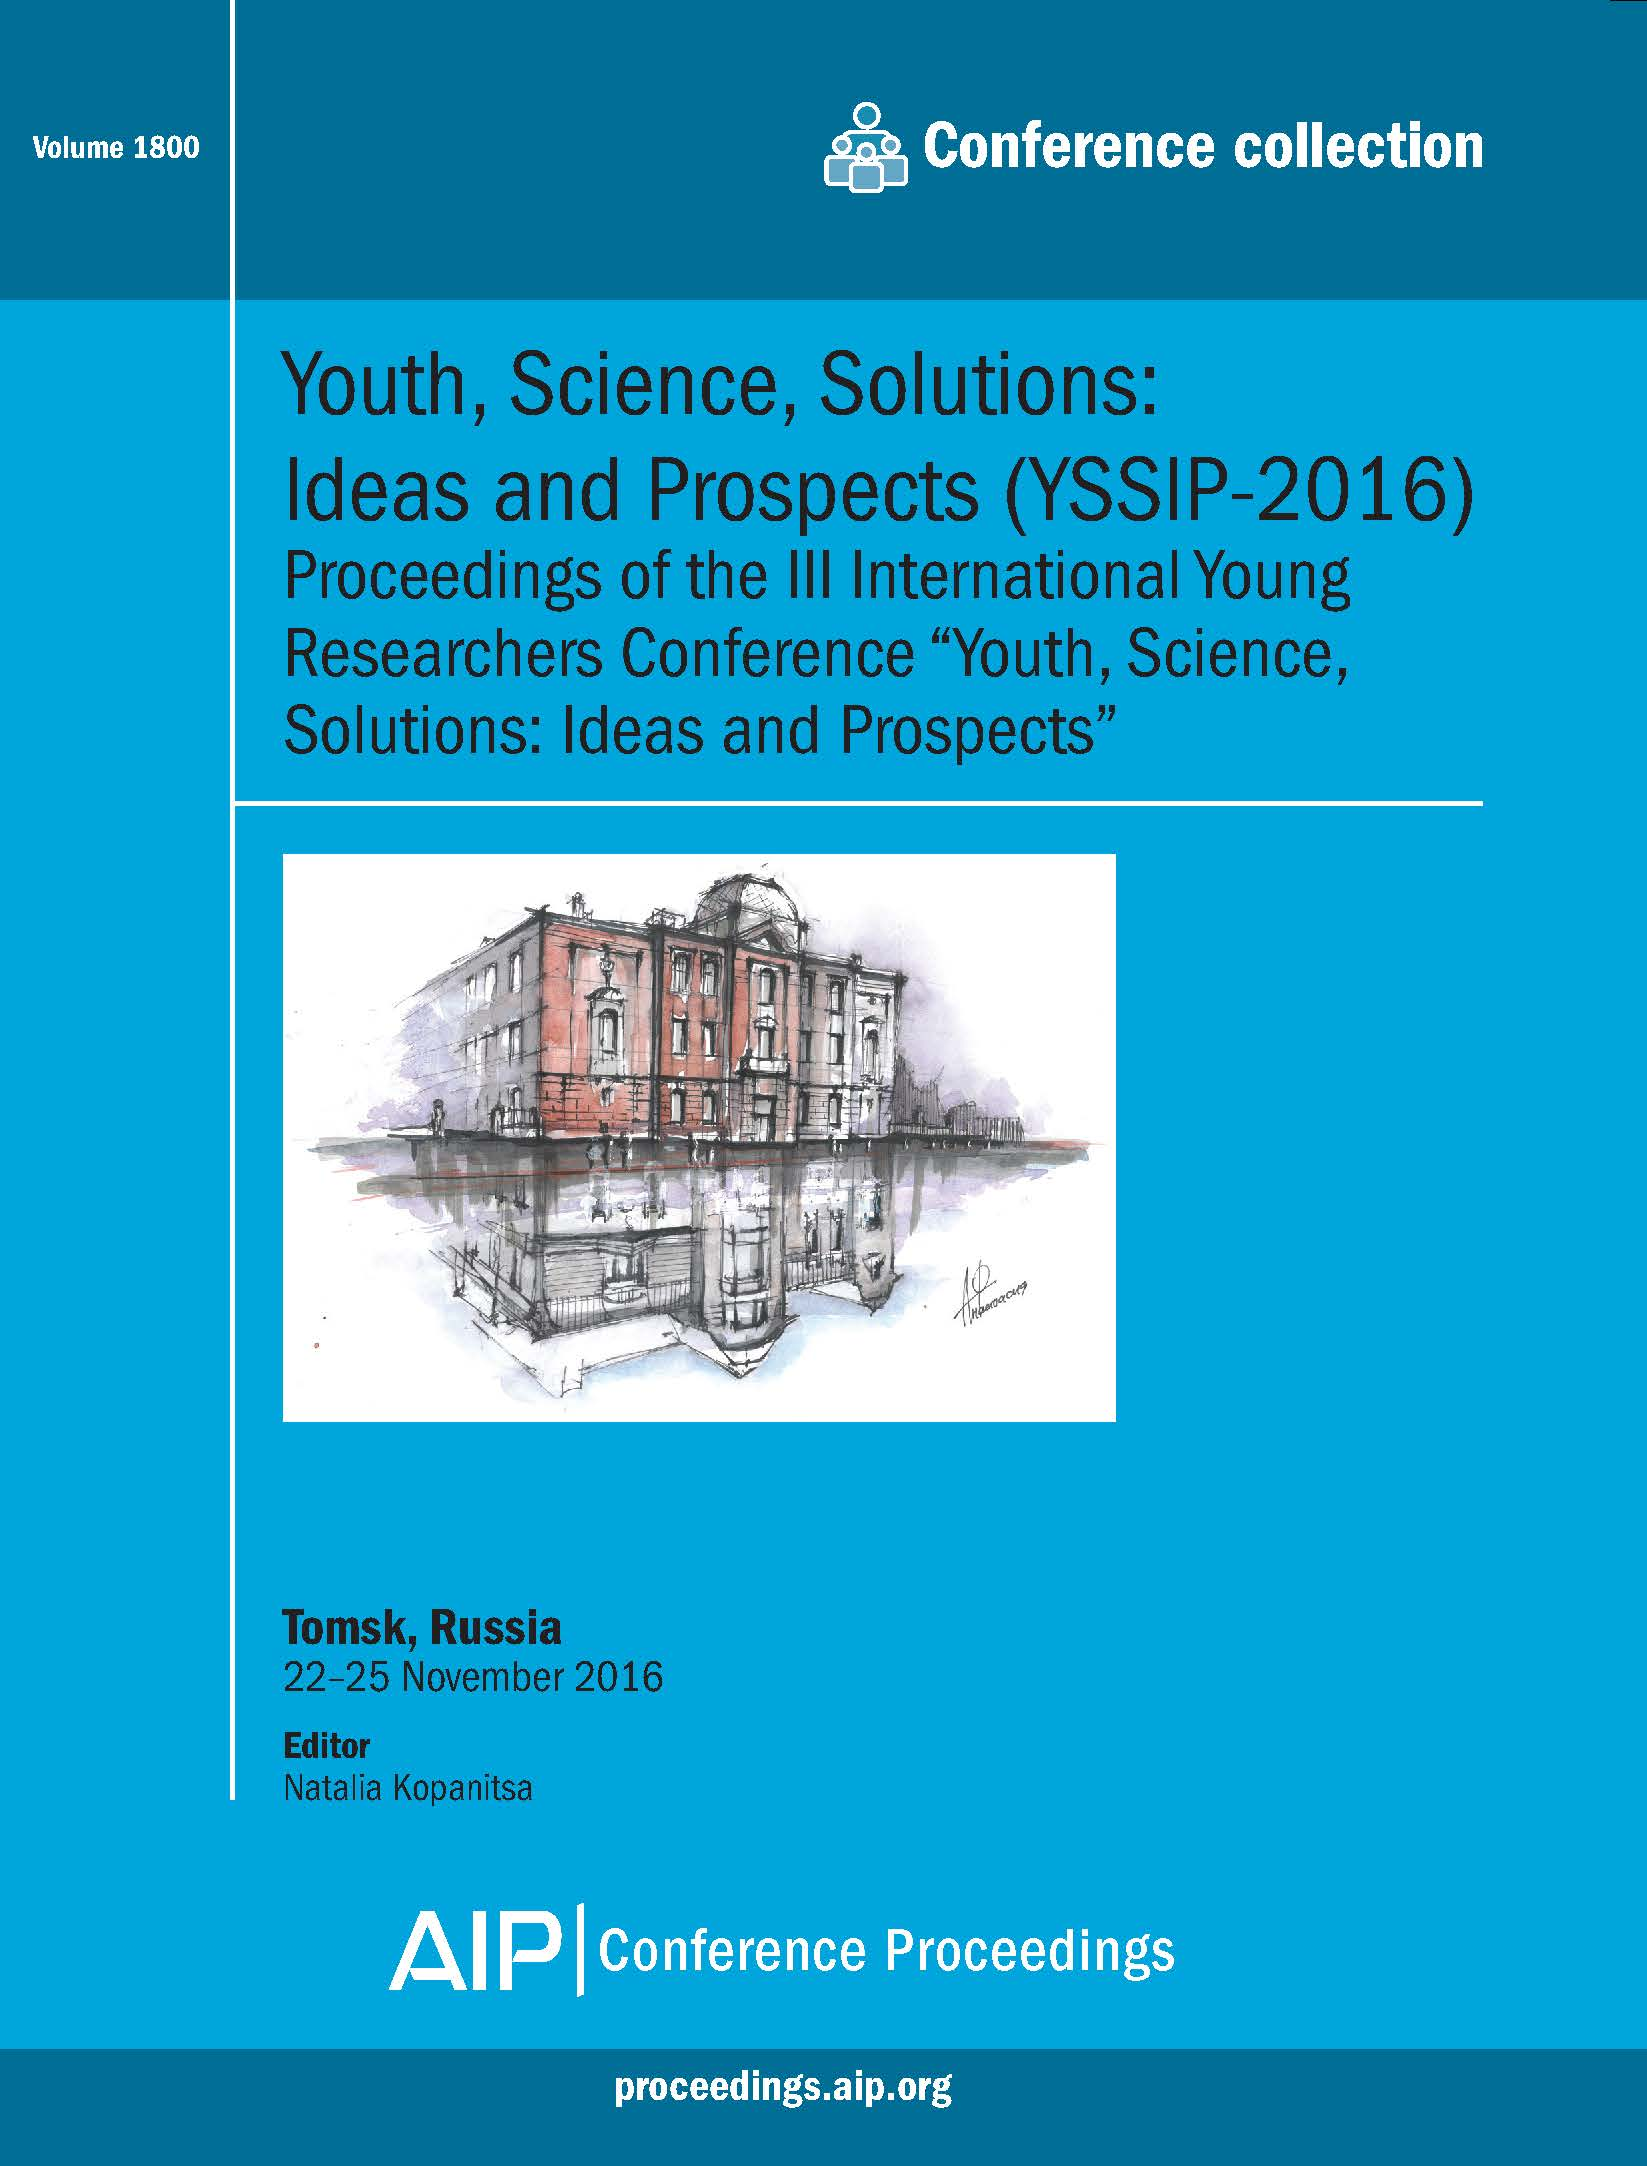 Volume 1800: Youth, Science, Solutions: Ideas and Prospects (YSSIP